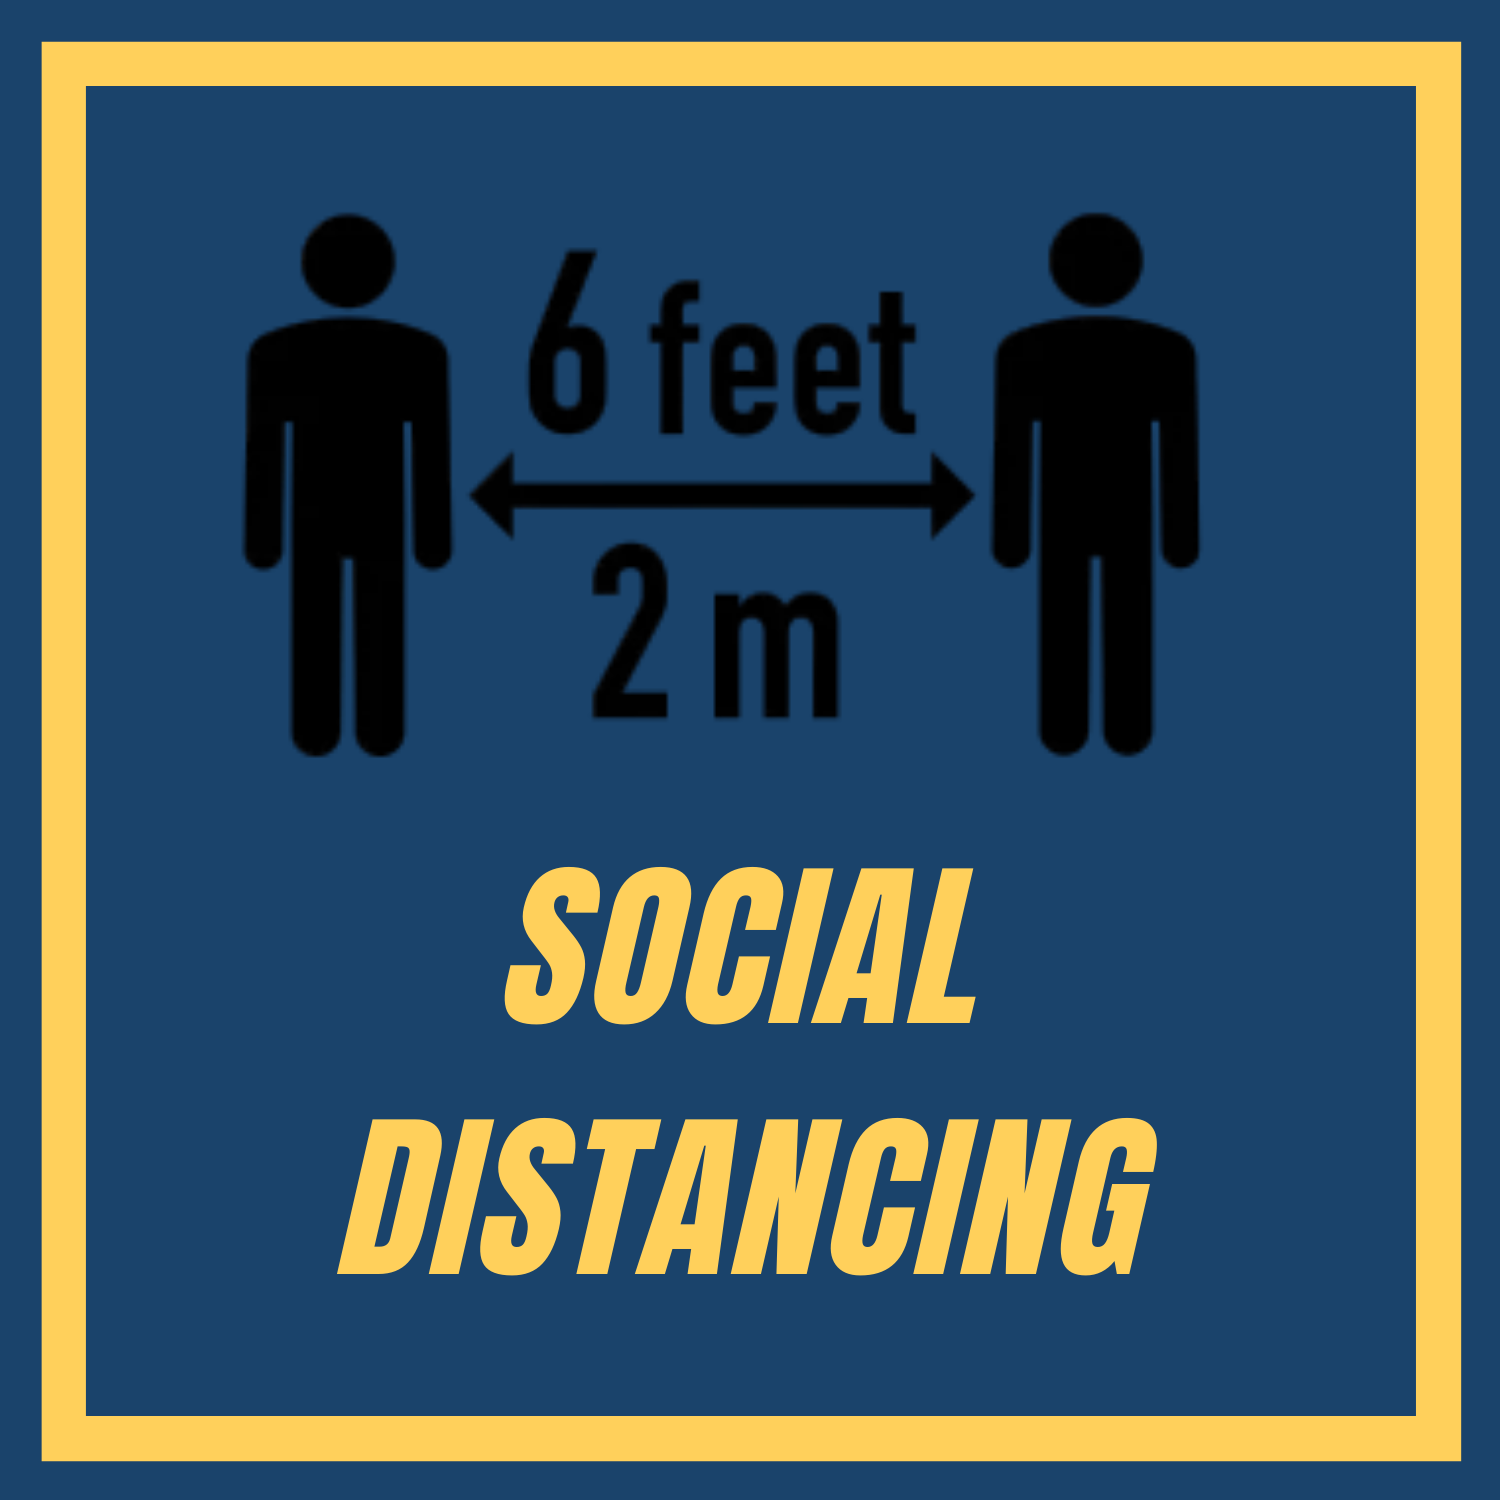 Social Distancing Definition